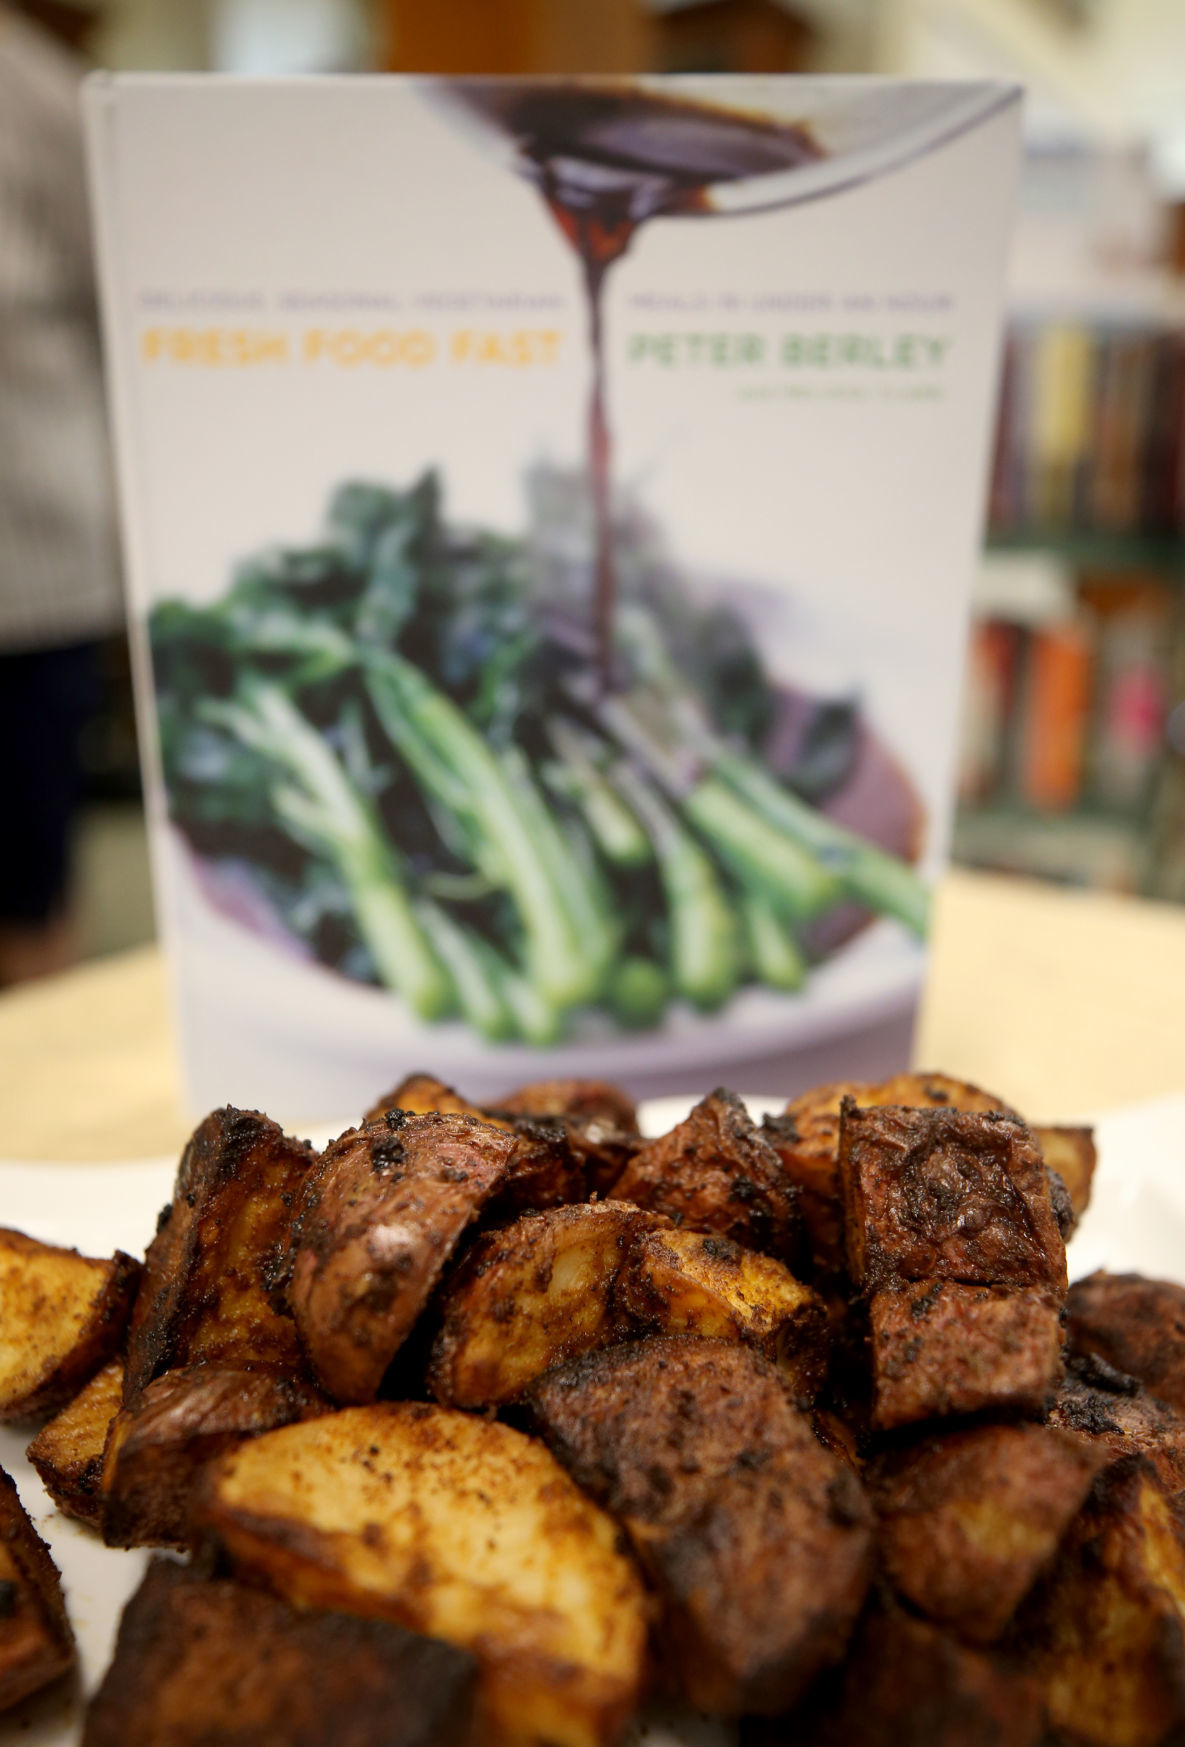 Wide variety of cookbooks at annual booksale